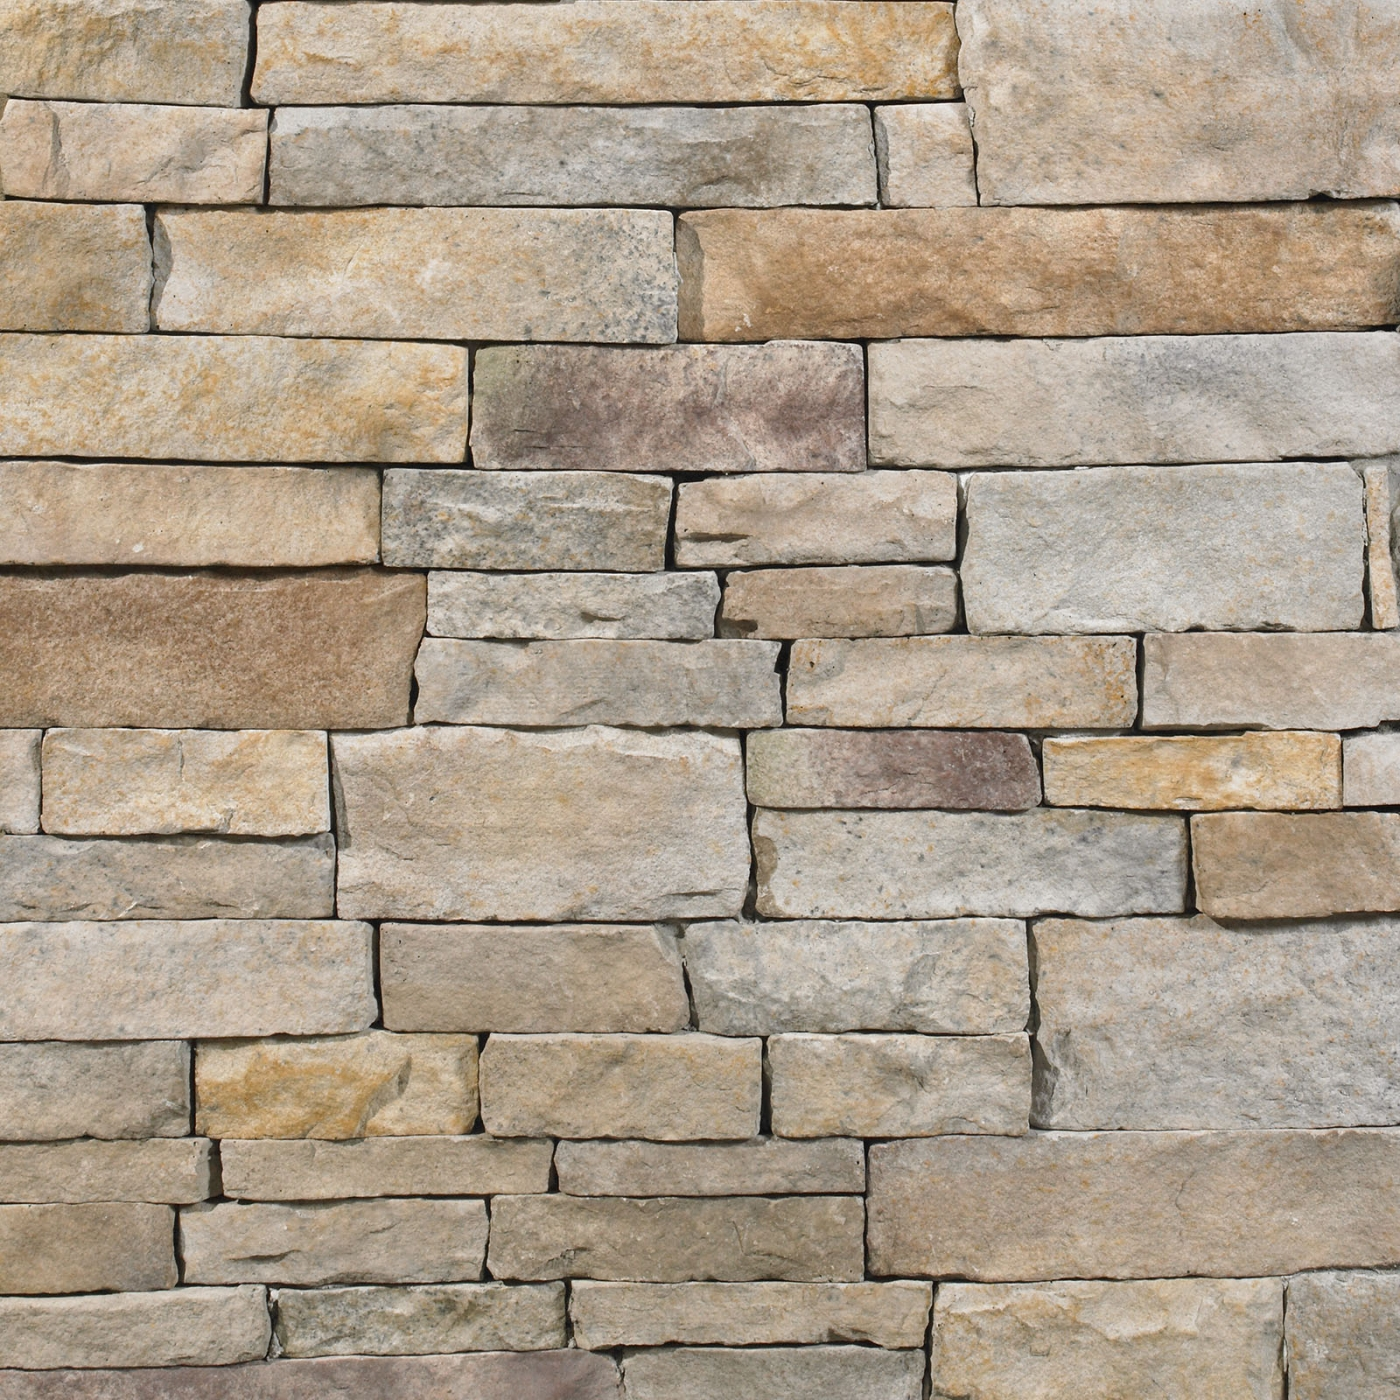 New Hampshire Ledgestone Stone Veneer from Environmental StoneWorks